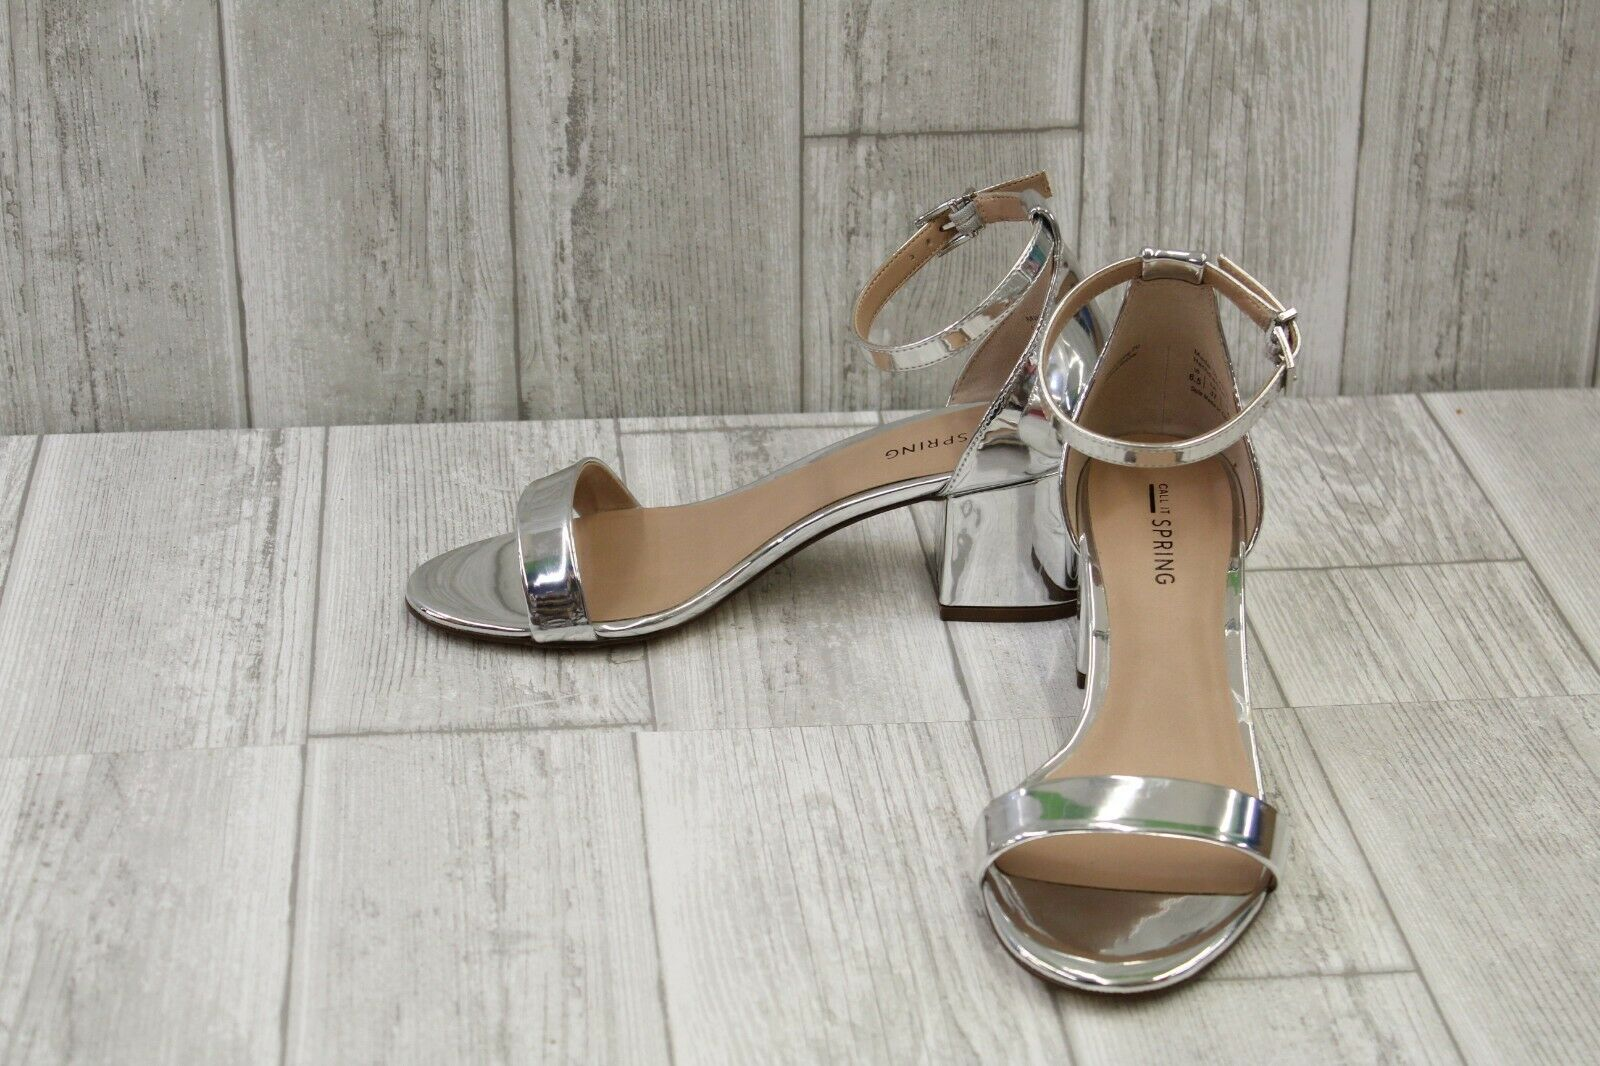 Call It Spring Elerranna Metallic Ankle Strap Sandals, Women's Size 6.5B, Silver